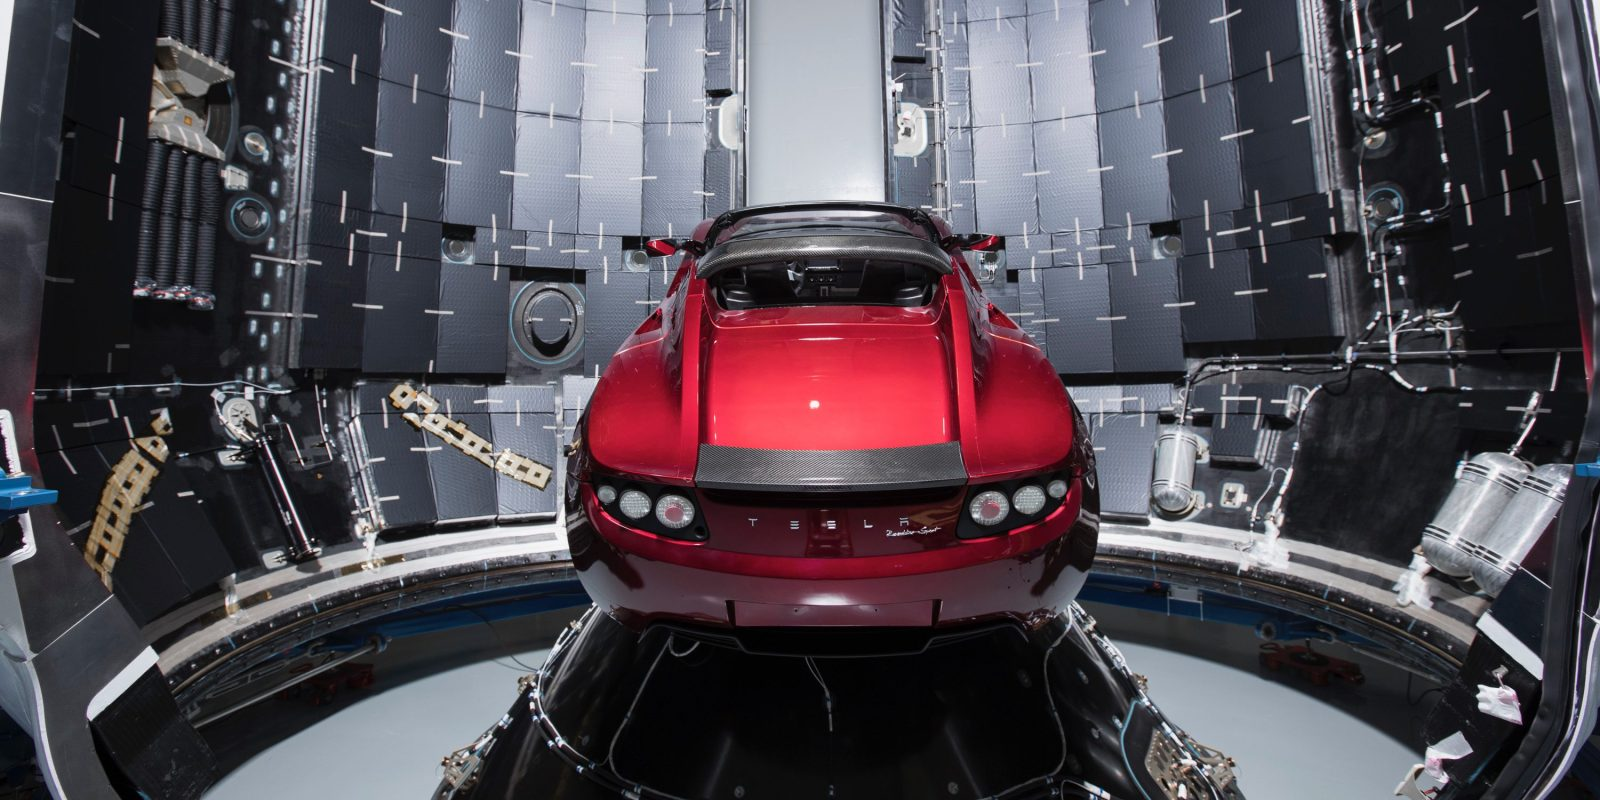 Tesla Roadster Set To Launch Into E On Ex Falcon Heavy February 6